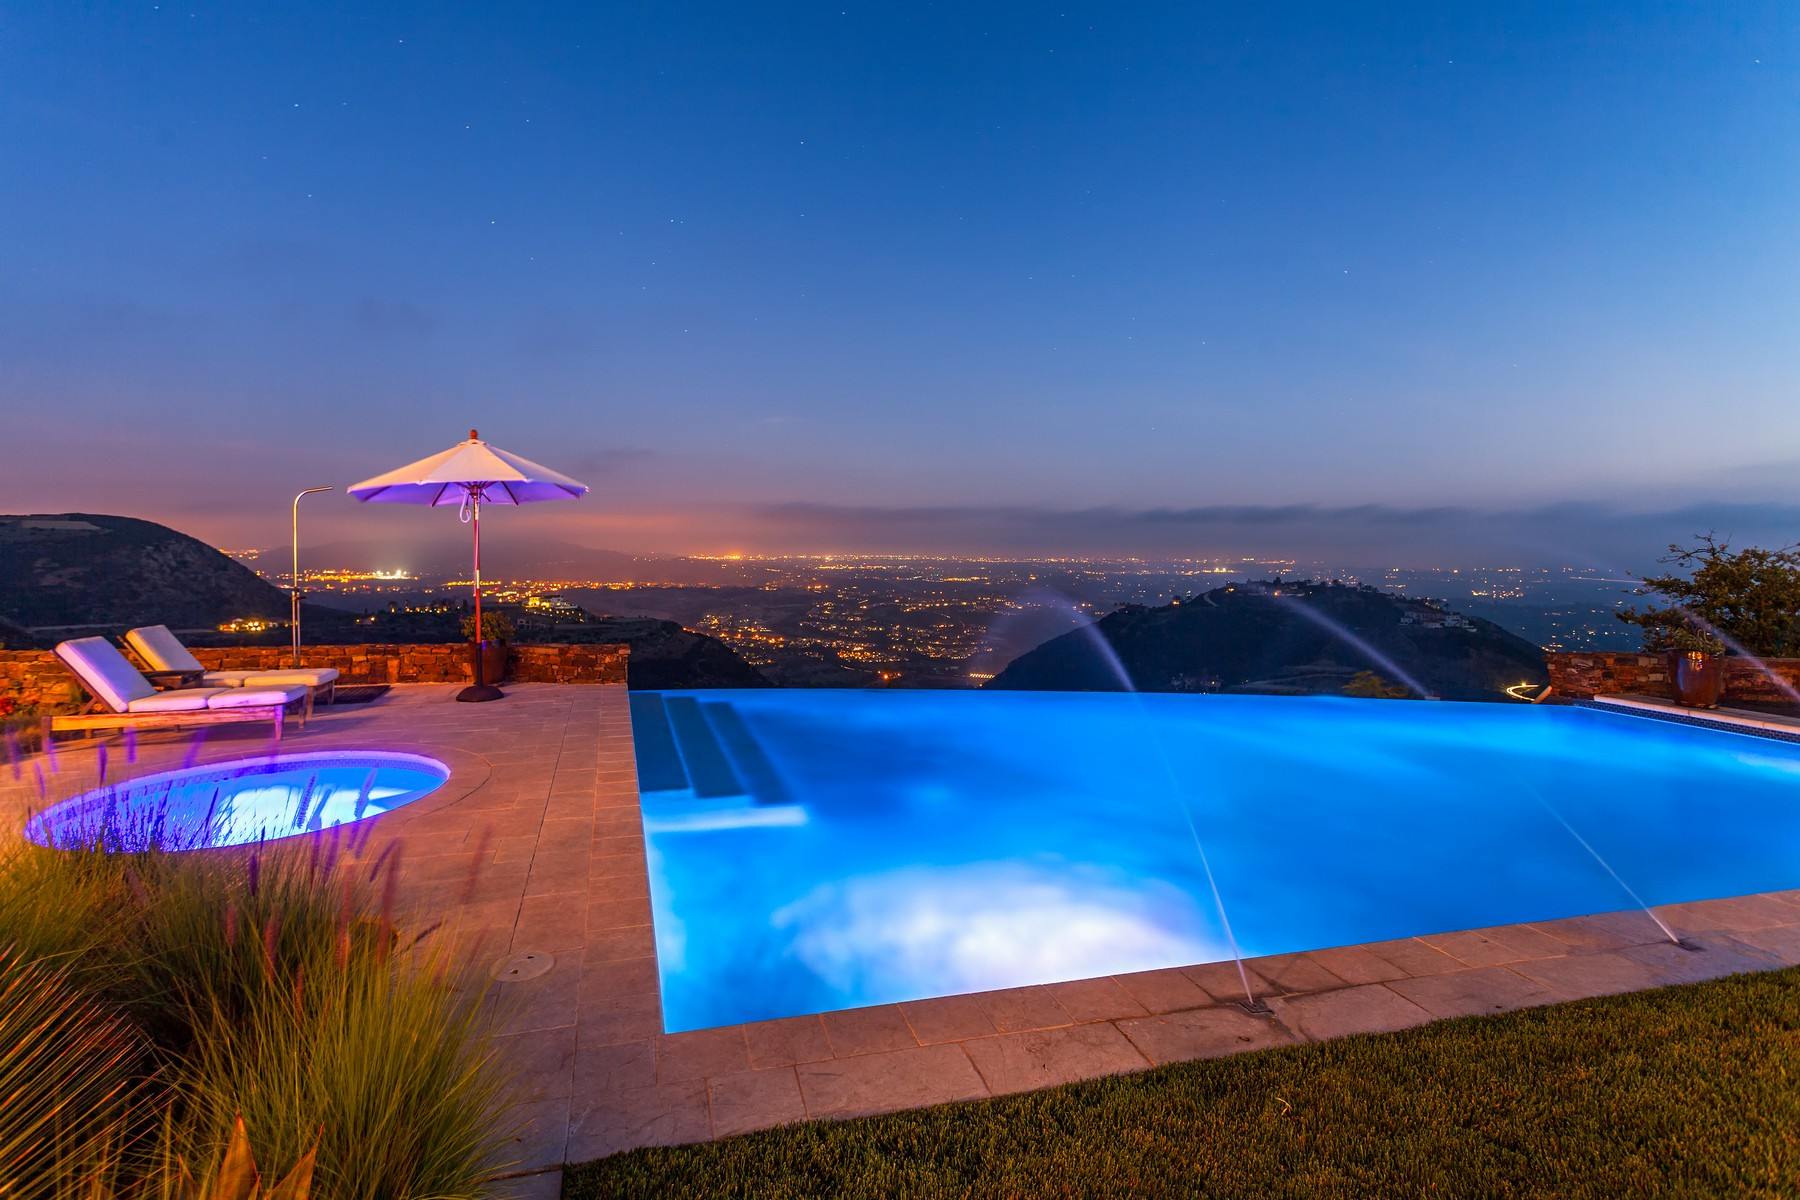 Single Family Home for Sale at 8063 El Cielo Rancho Santa Fe, California 92067 United States